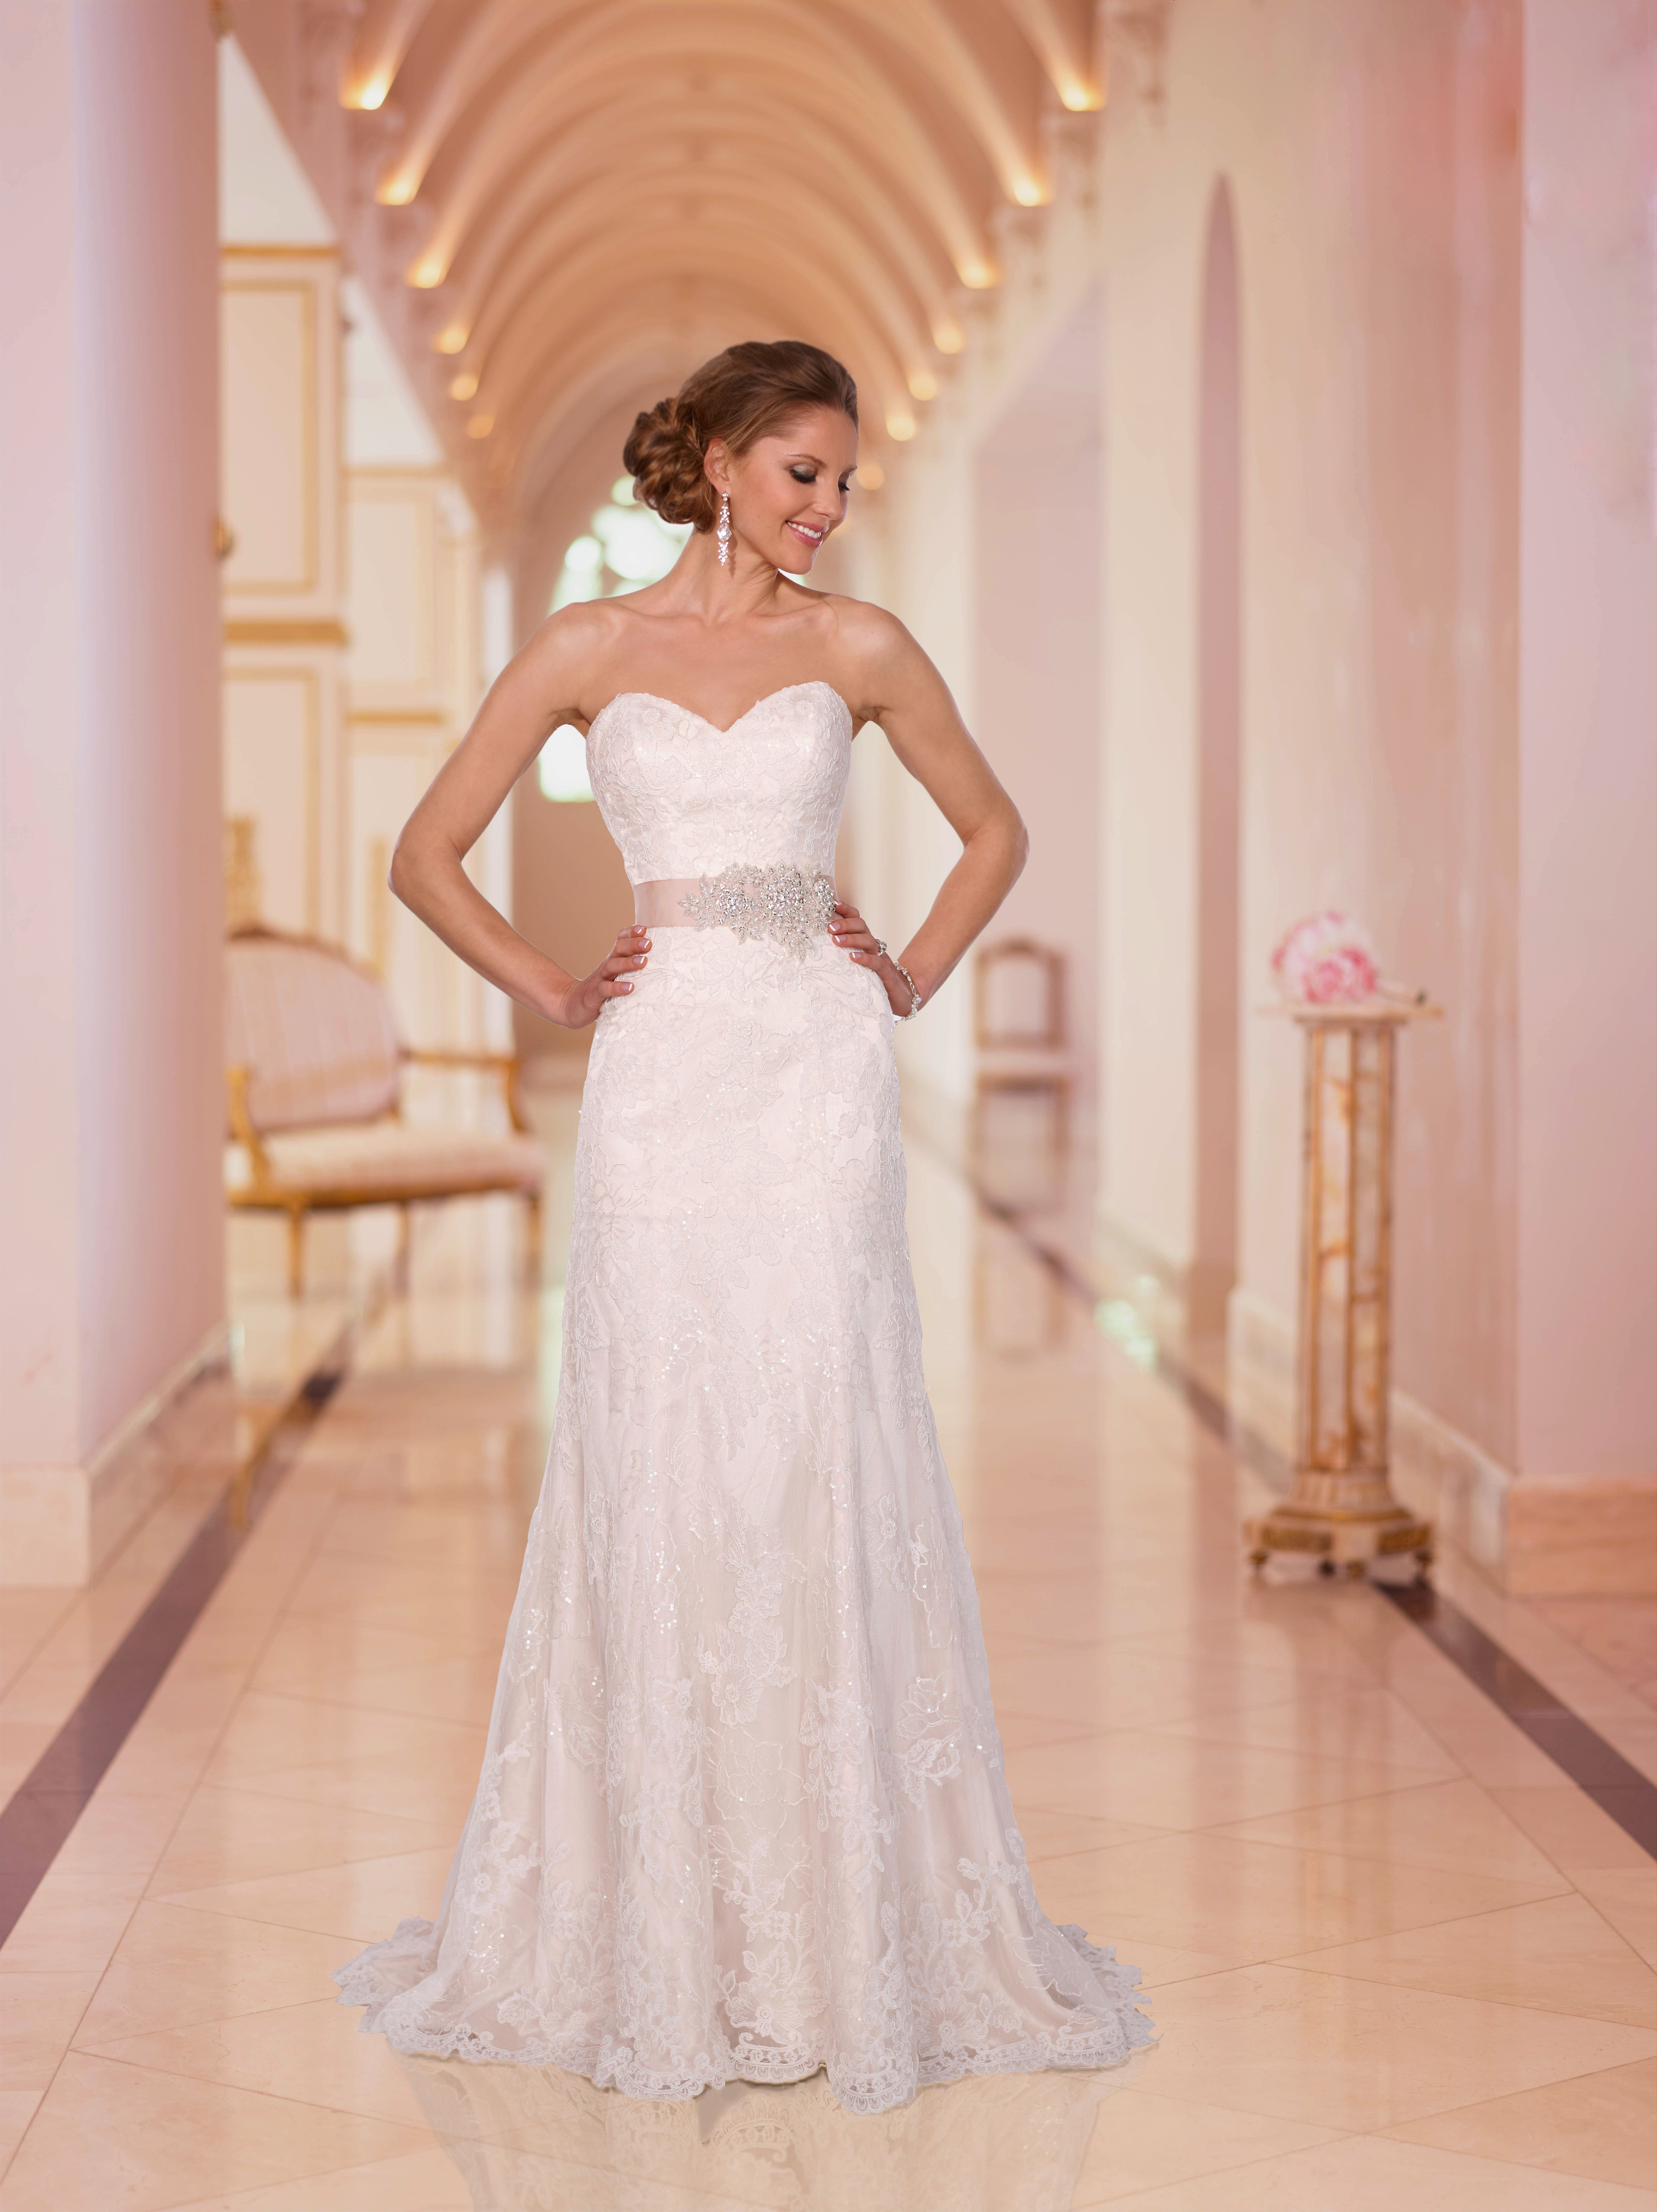 Wedding dresses spokane  Skylar   Wedding  Pinterest  Wedding dress Wedding and Weddings